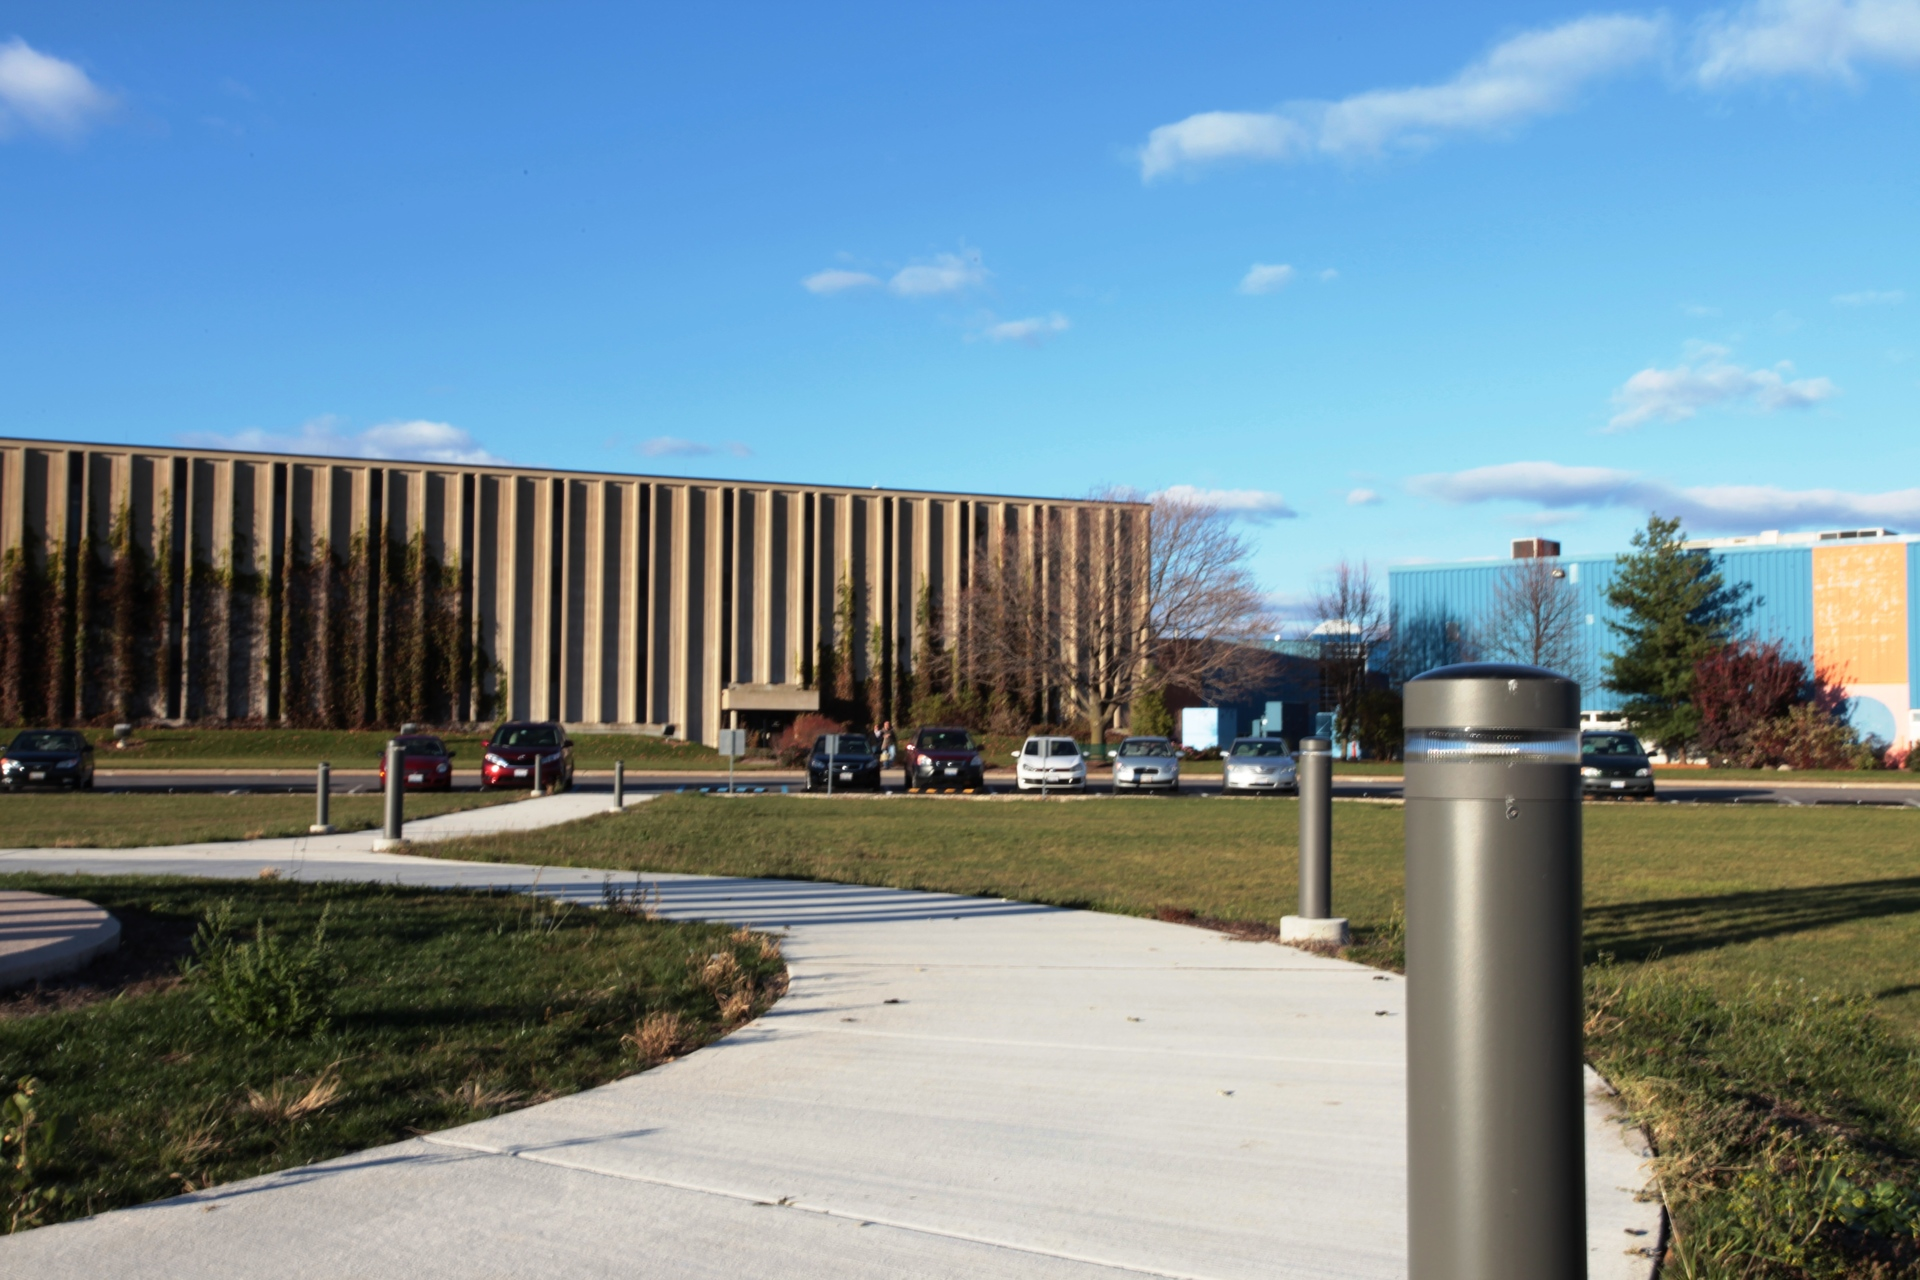 Outside the Fermilab Industrial Building Complex lies a steel structure called Tractricious, that soars 36 feet high. Built to commemorate the new Technical Support building, Meteor's SP-010 solar bollards illuminates its pathways.